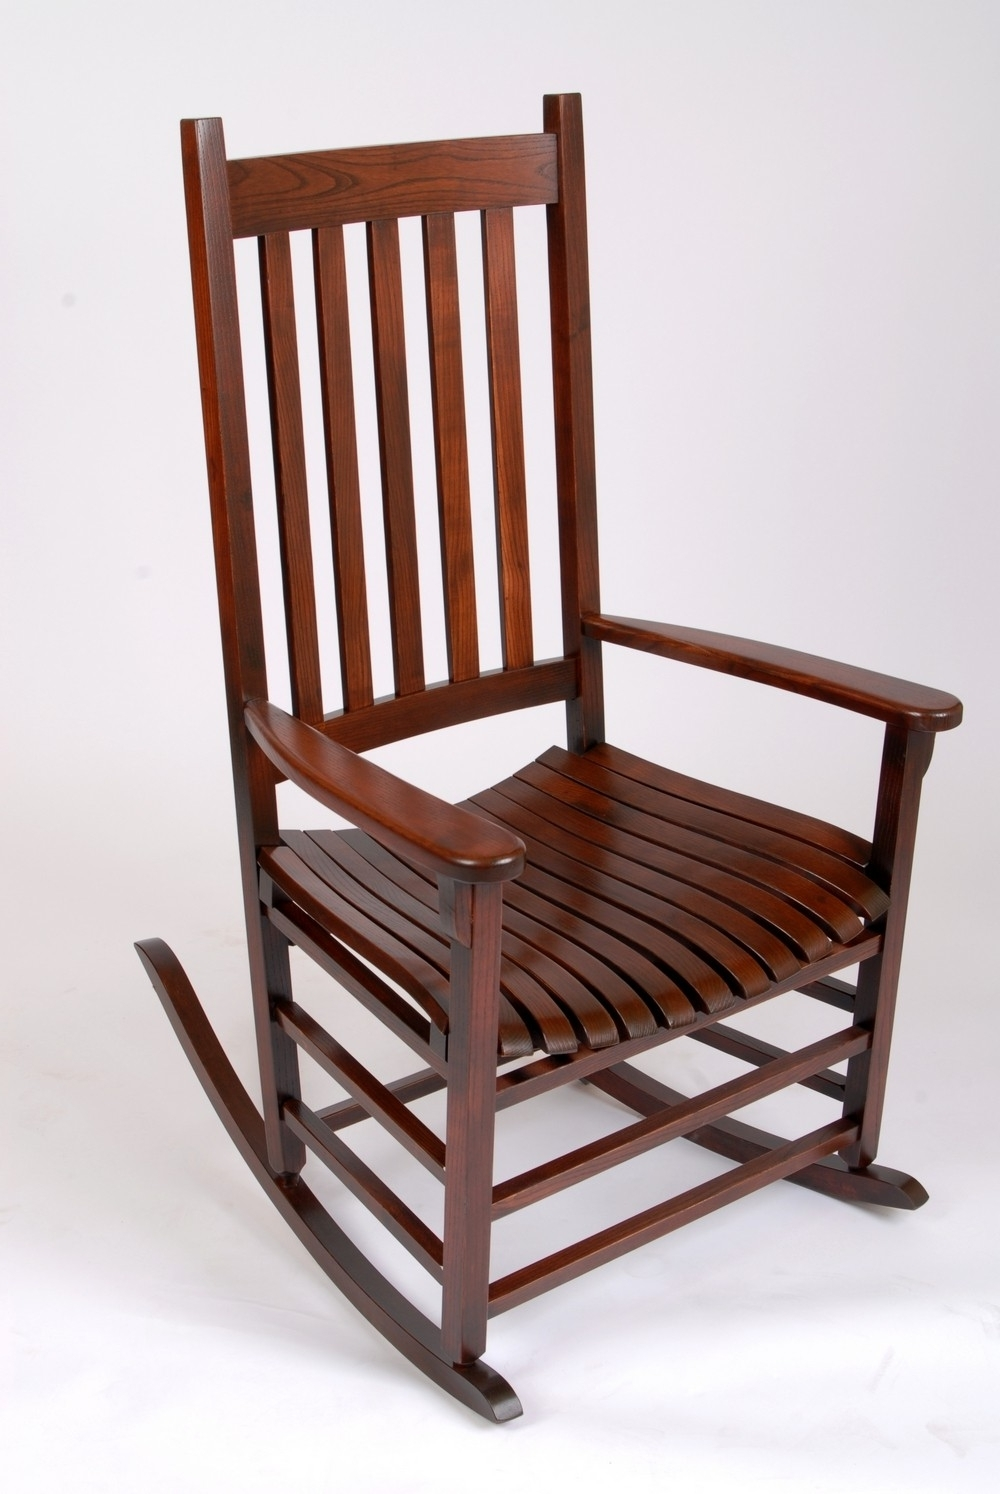 Sensational Inspiration Ideas Old Style Wooden Rocking Chair 68 Pertaining To Well Known Old Fashioned Rocking Chairs (View 6 of 15)